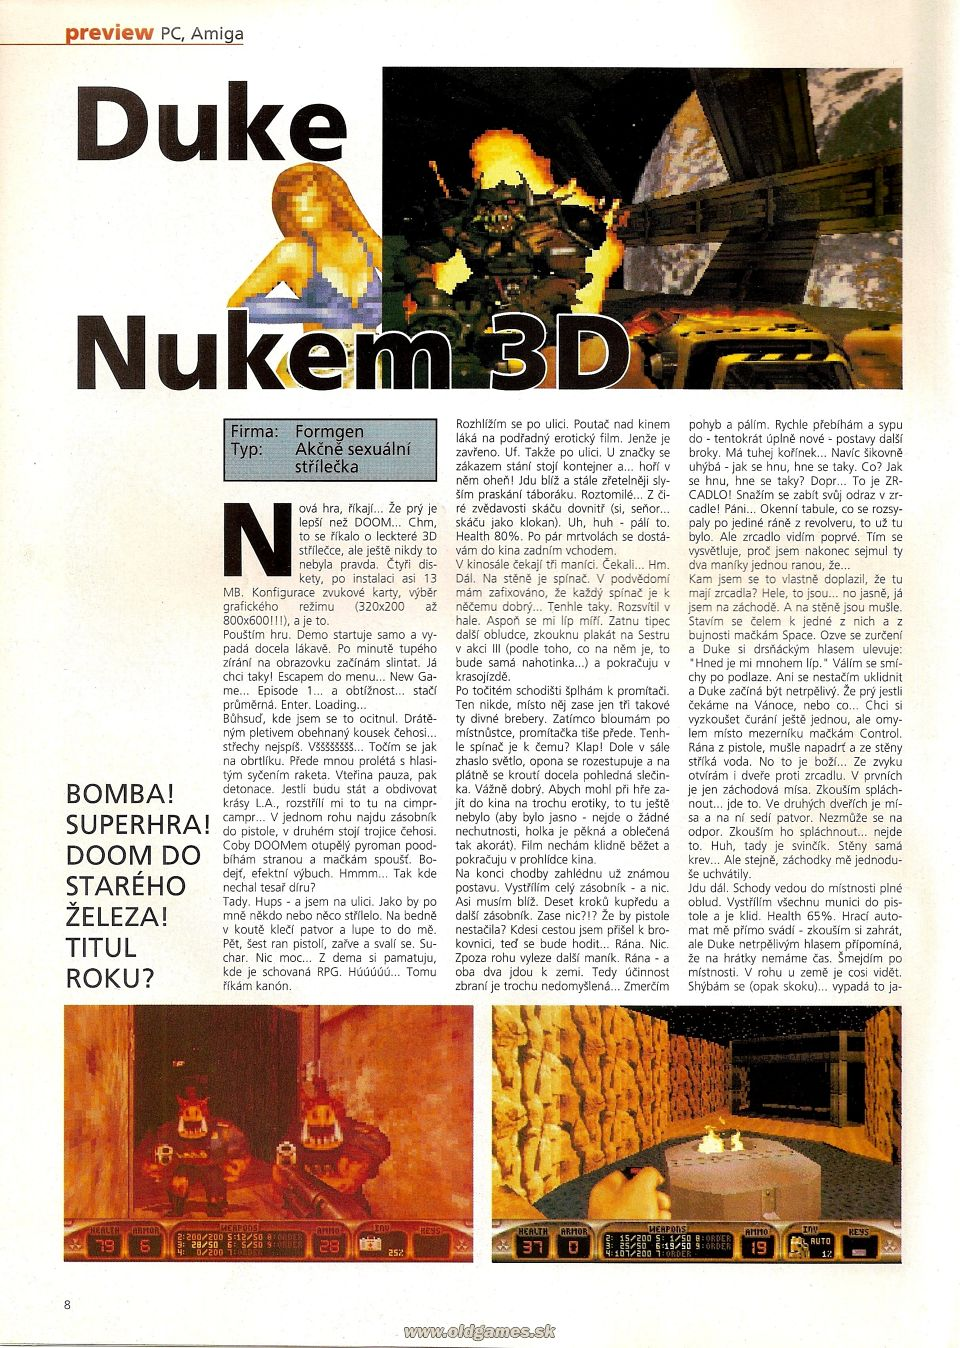 Duke Nukem 3D - Preview